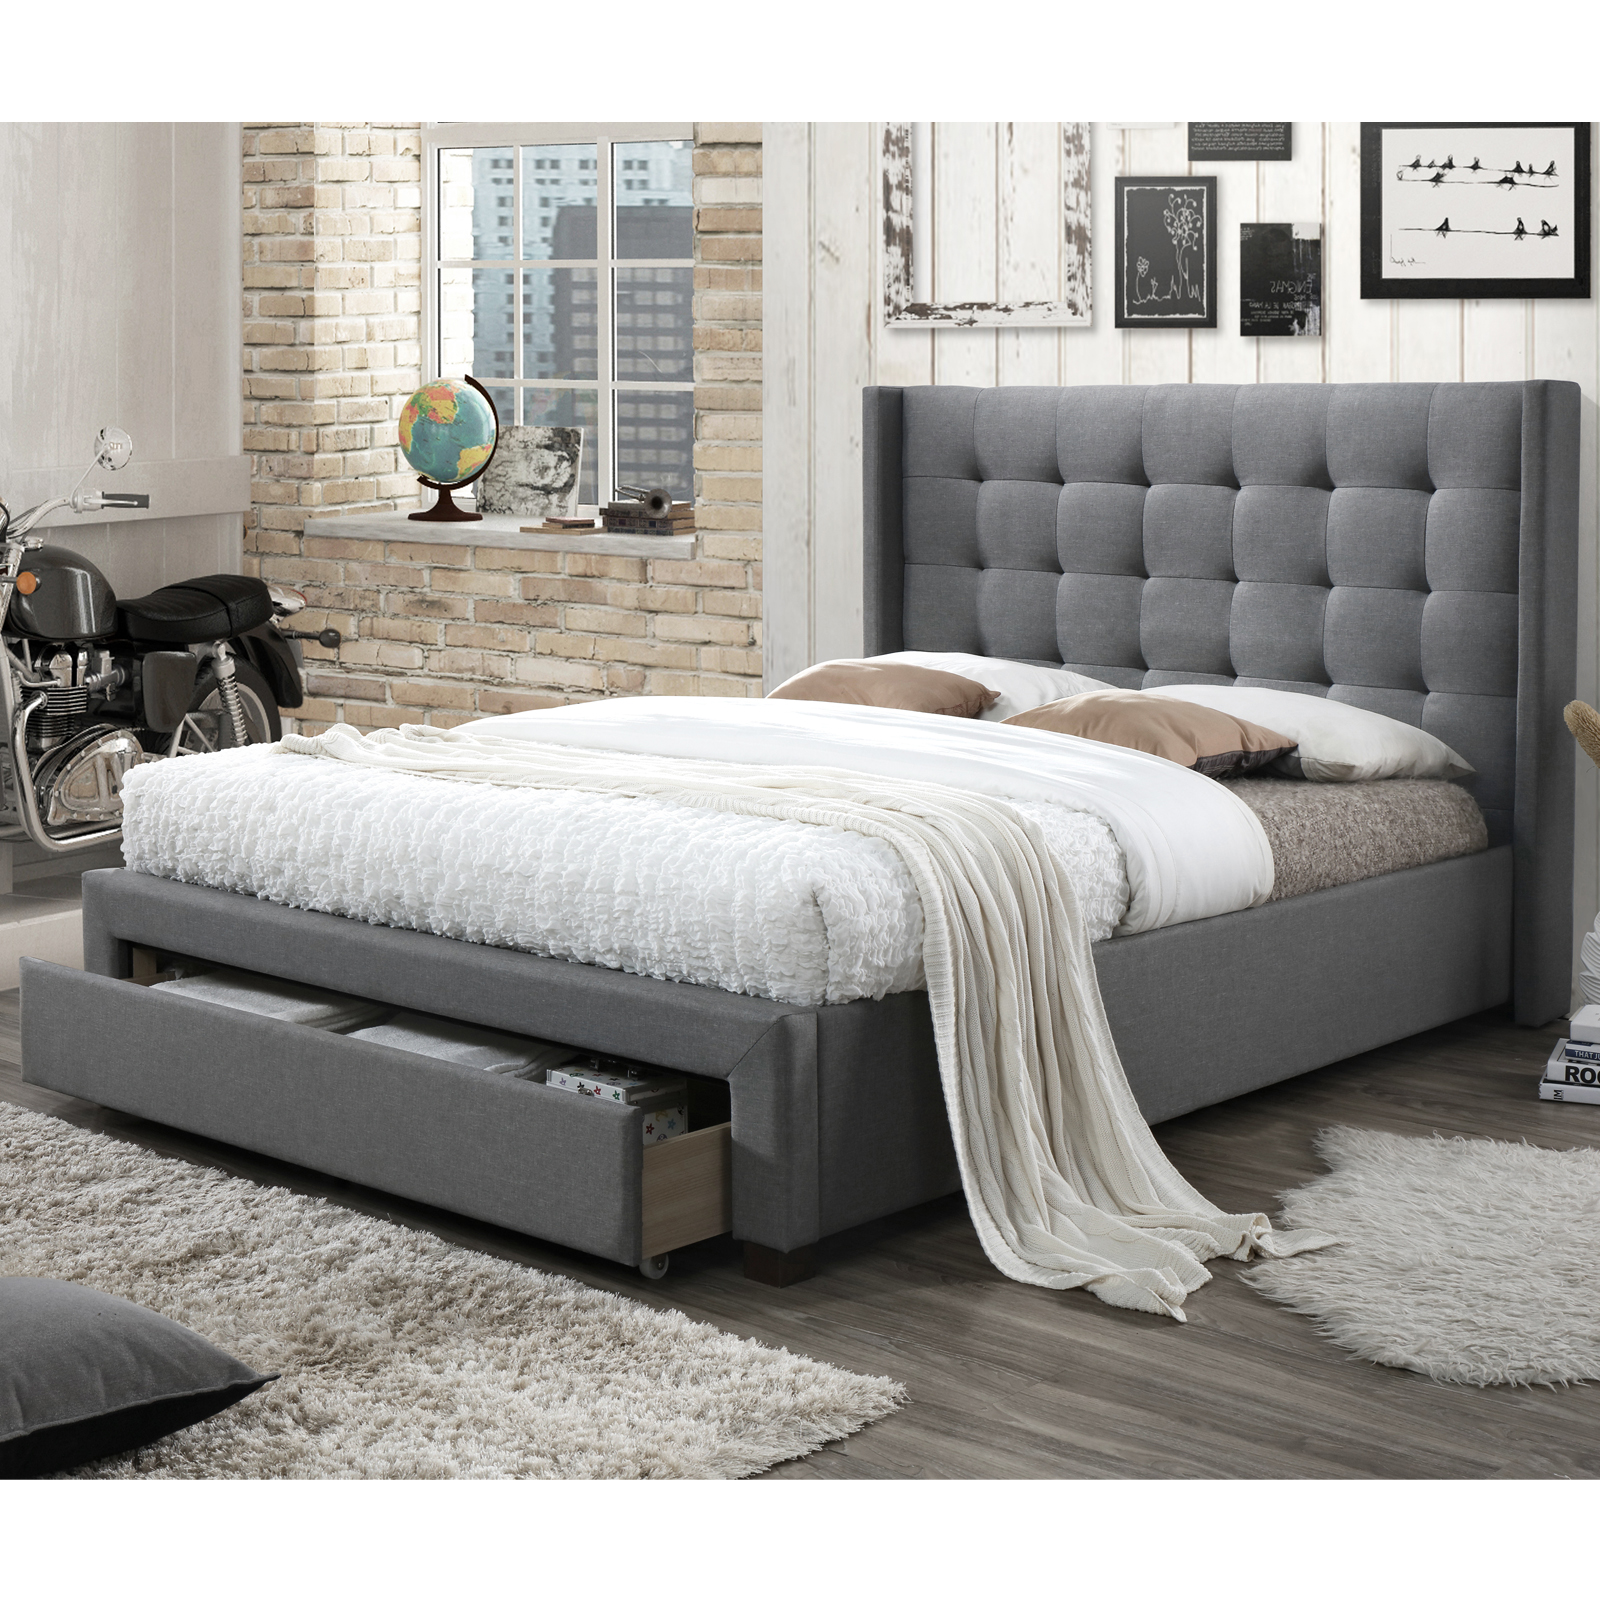 Rocky Queen Bed With 1 Drawer [Light Grey]